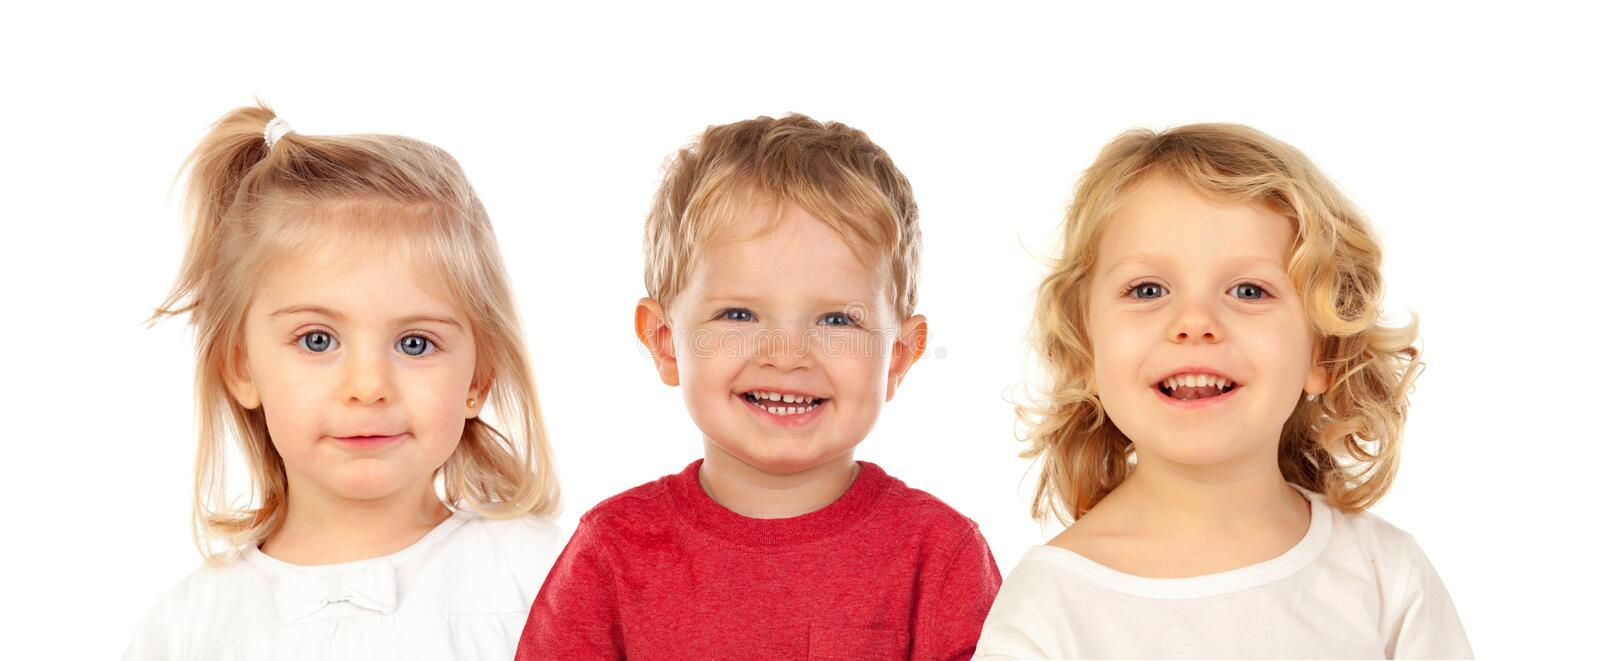 Funny blond brothers royalty free stock photos